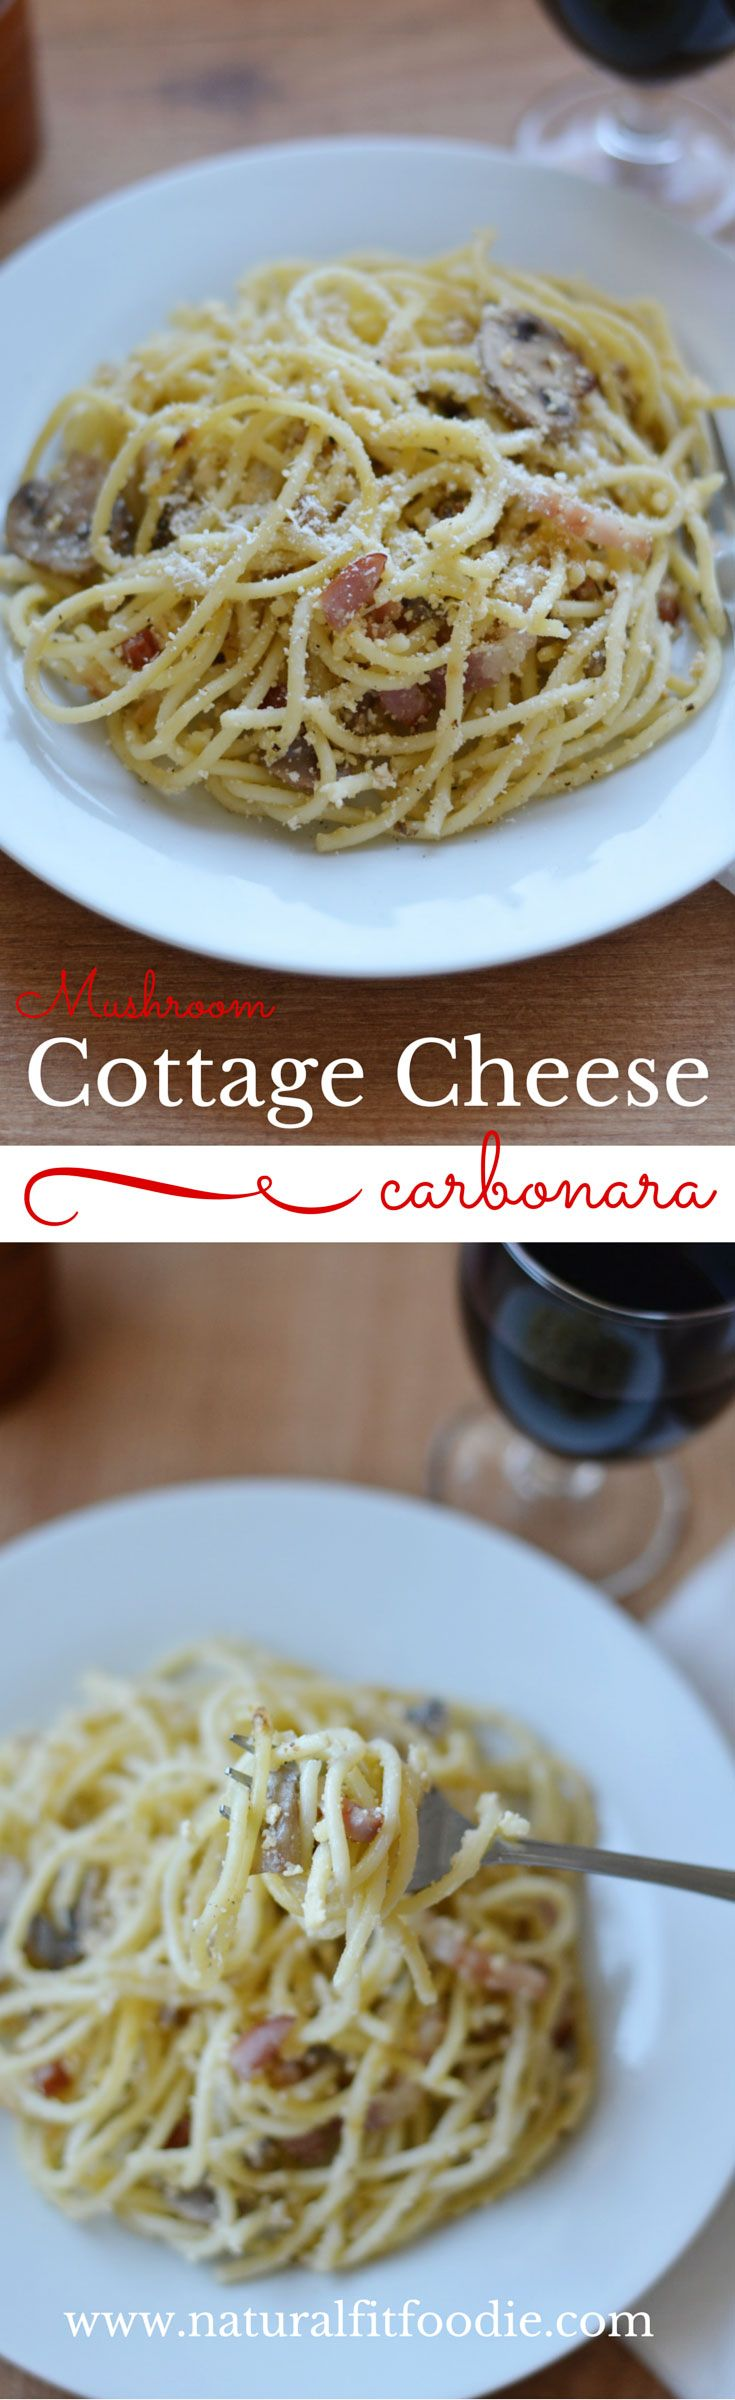 Mushroom Cottage Cheese Carbonara is a healthy remake of the traditional classic.